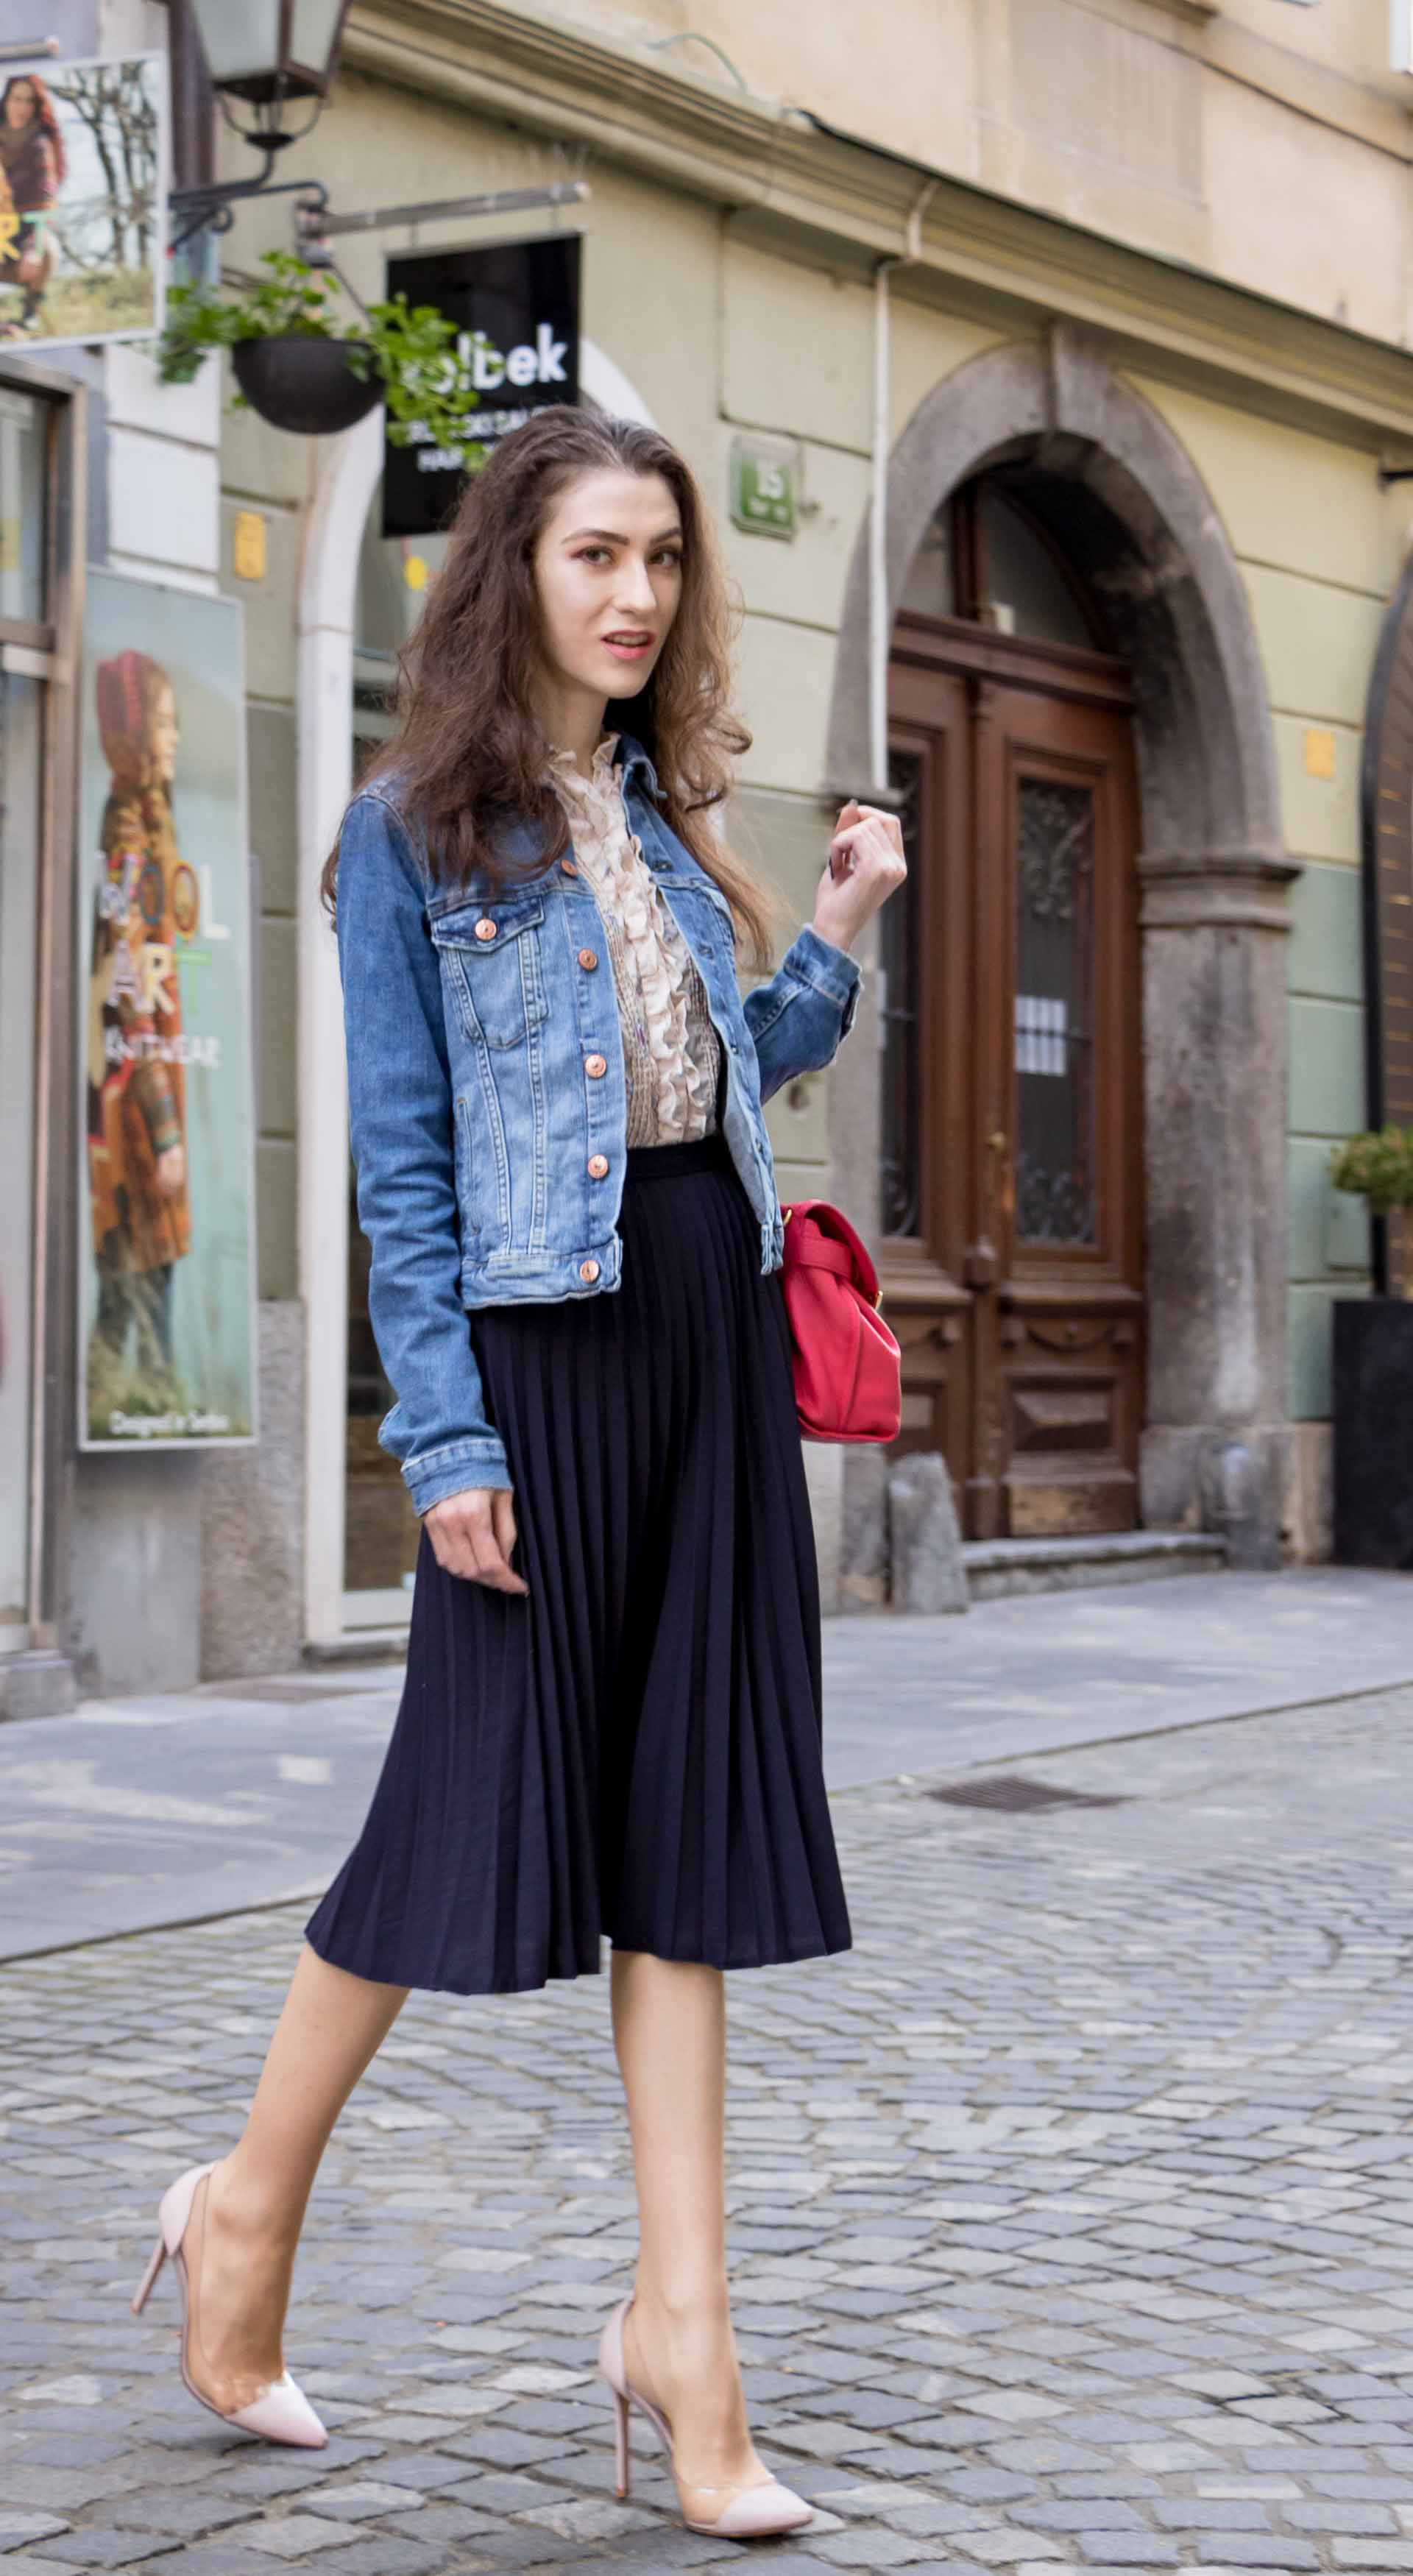 bc57cb0718ef Veronika Lipar Fashion Blogger of Brunette from Wall Street wearing H&M  denim jacket, floral blouse ...